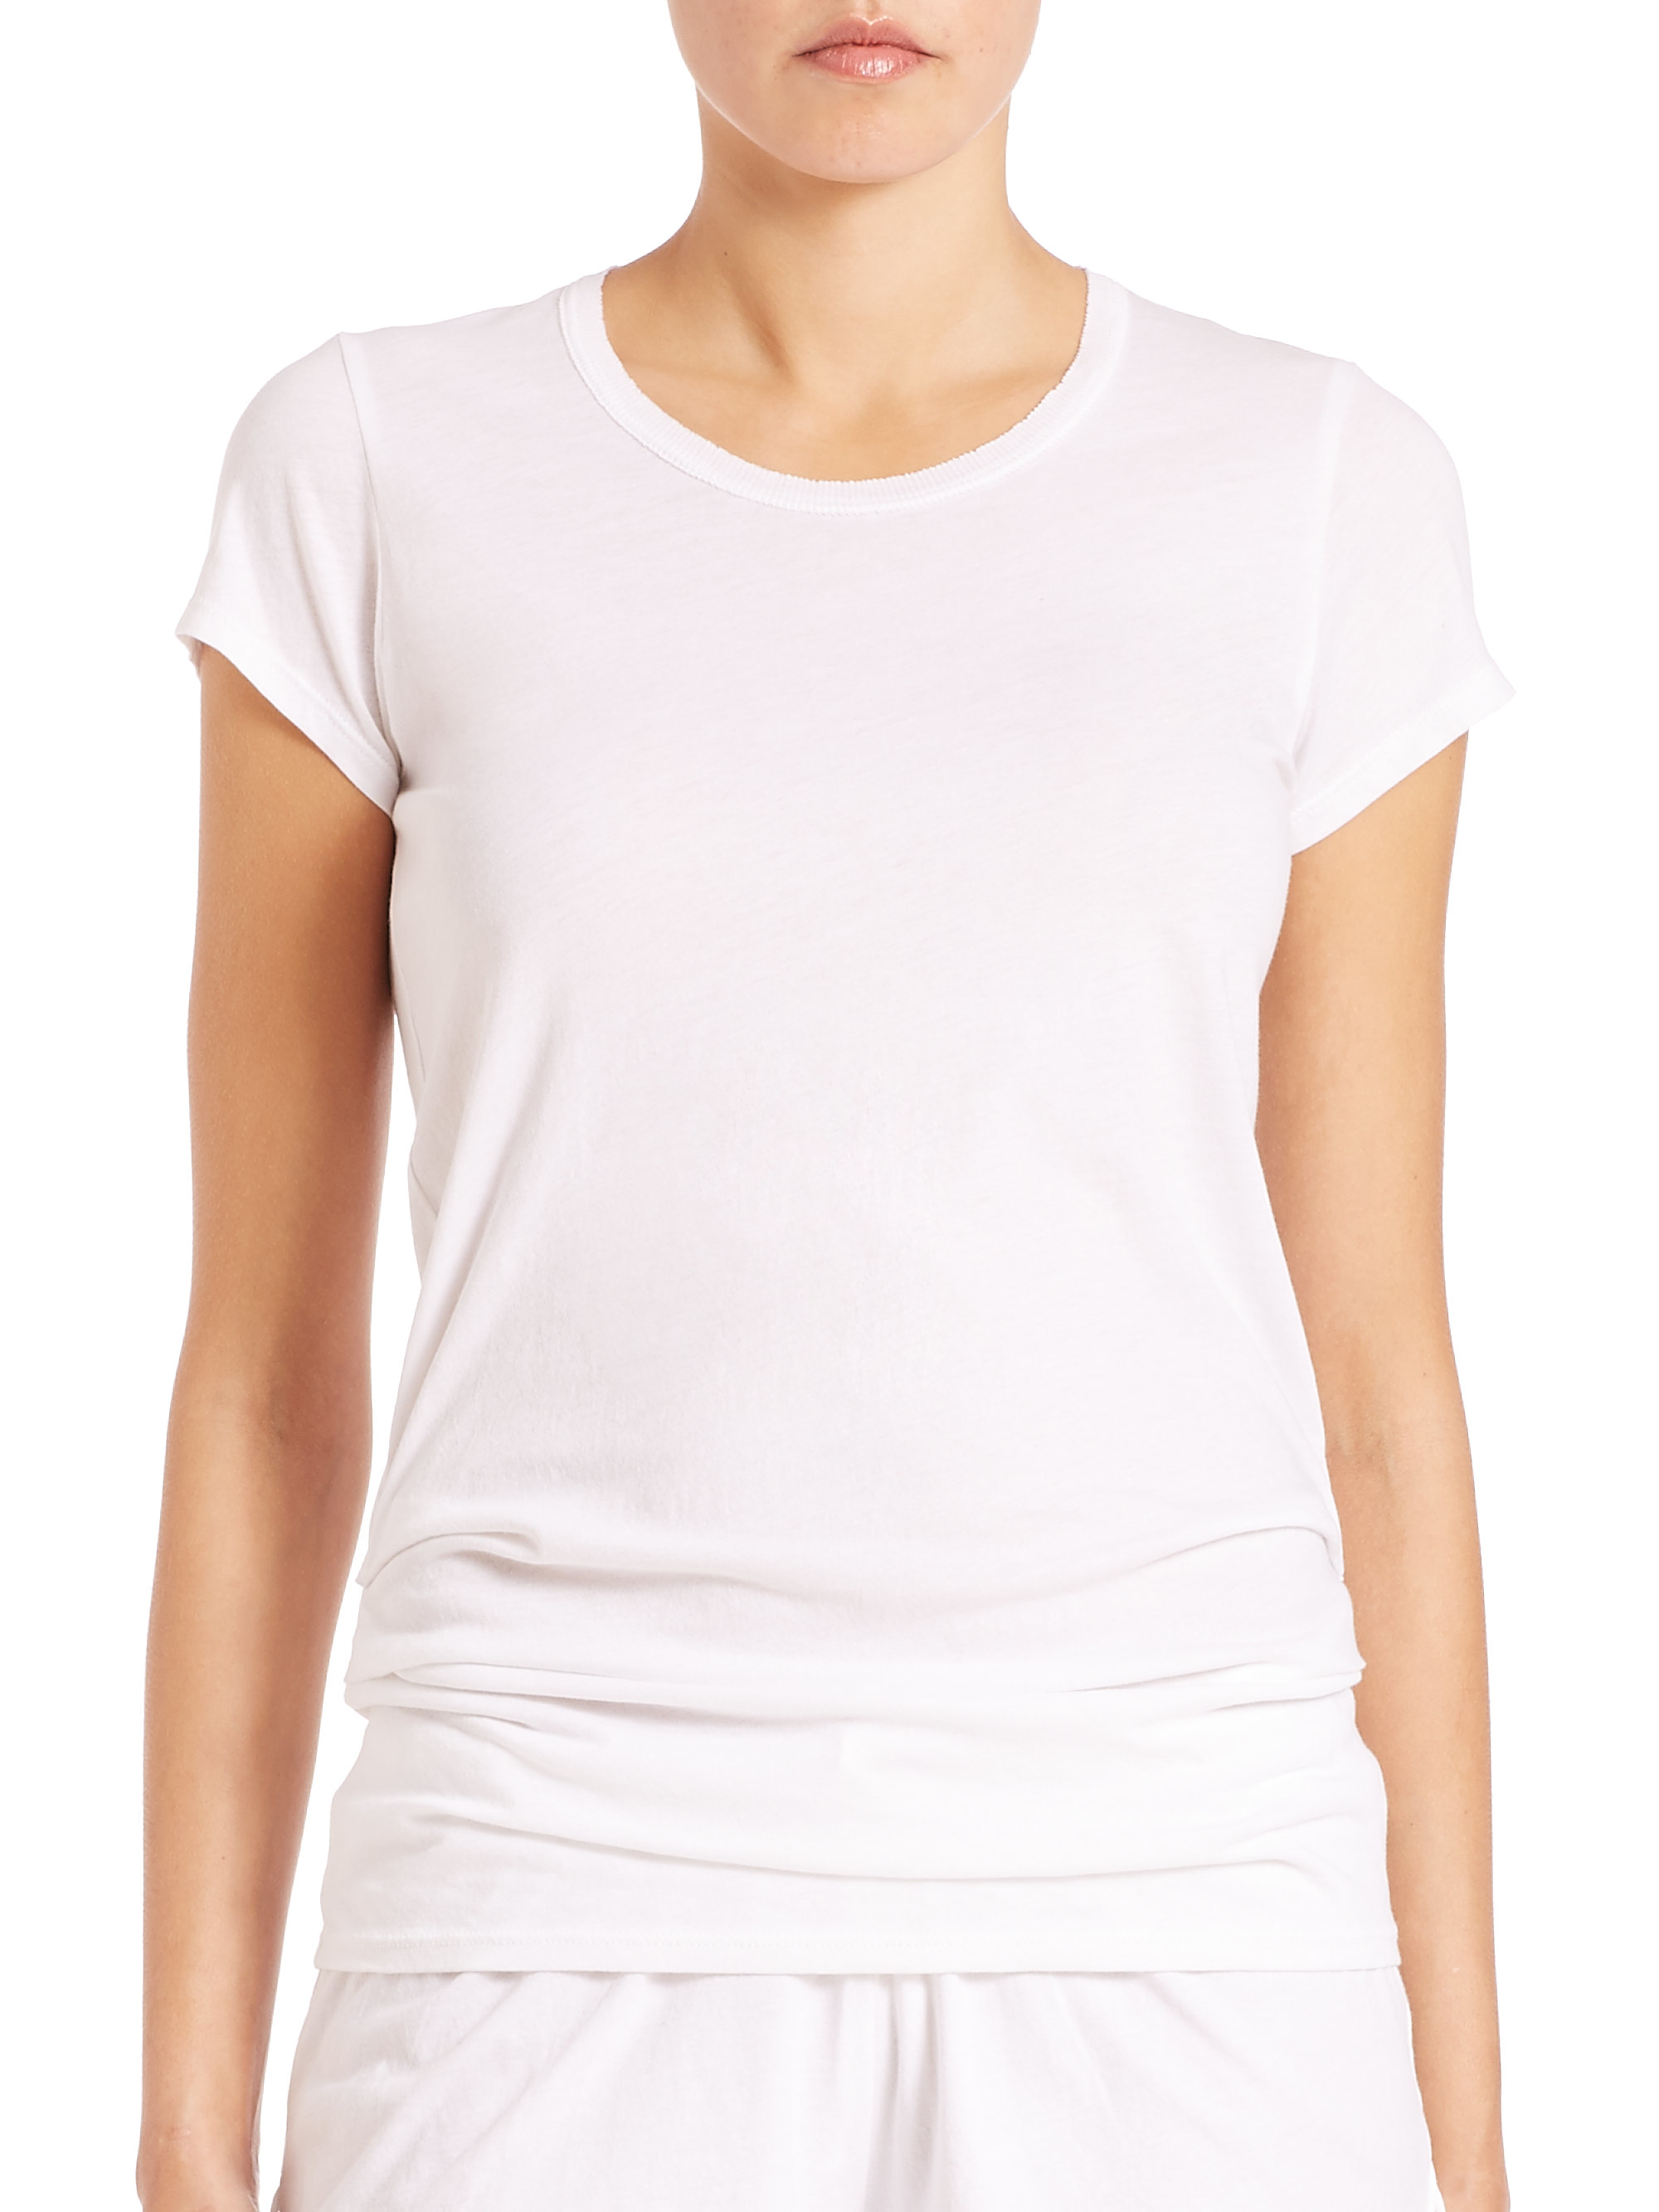 Try our super soft tees made of Pima cotton from Peru. The feminine necklines and effortless drapes make these essential t-shirts complimentary to a variety of body types. Try our super soft tees made of Pima cotton from Peru. The feminine necklines and effortless drapes make these essential t-shirts complimentary to a variety of body types.